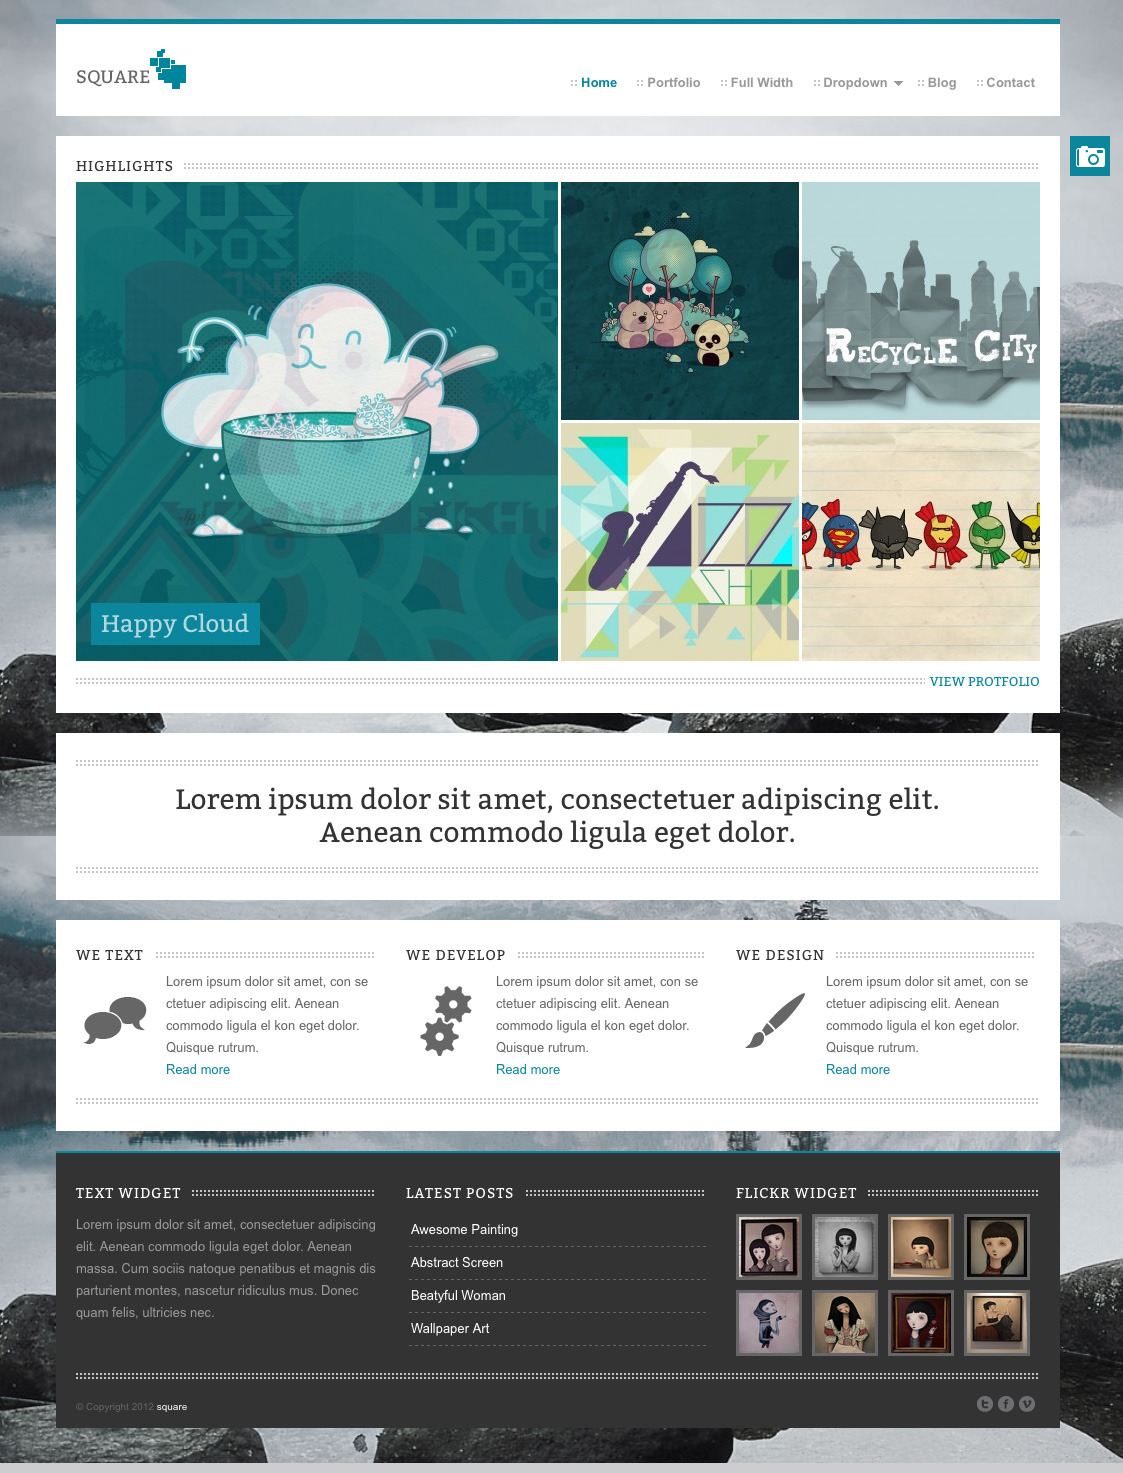 square - Agency and Freelancer Portfoflio Theme - this is the portfolio page. on this page all your projects will be shown. in the navigation (categories) above the projects you can filter the projects.